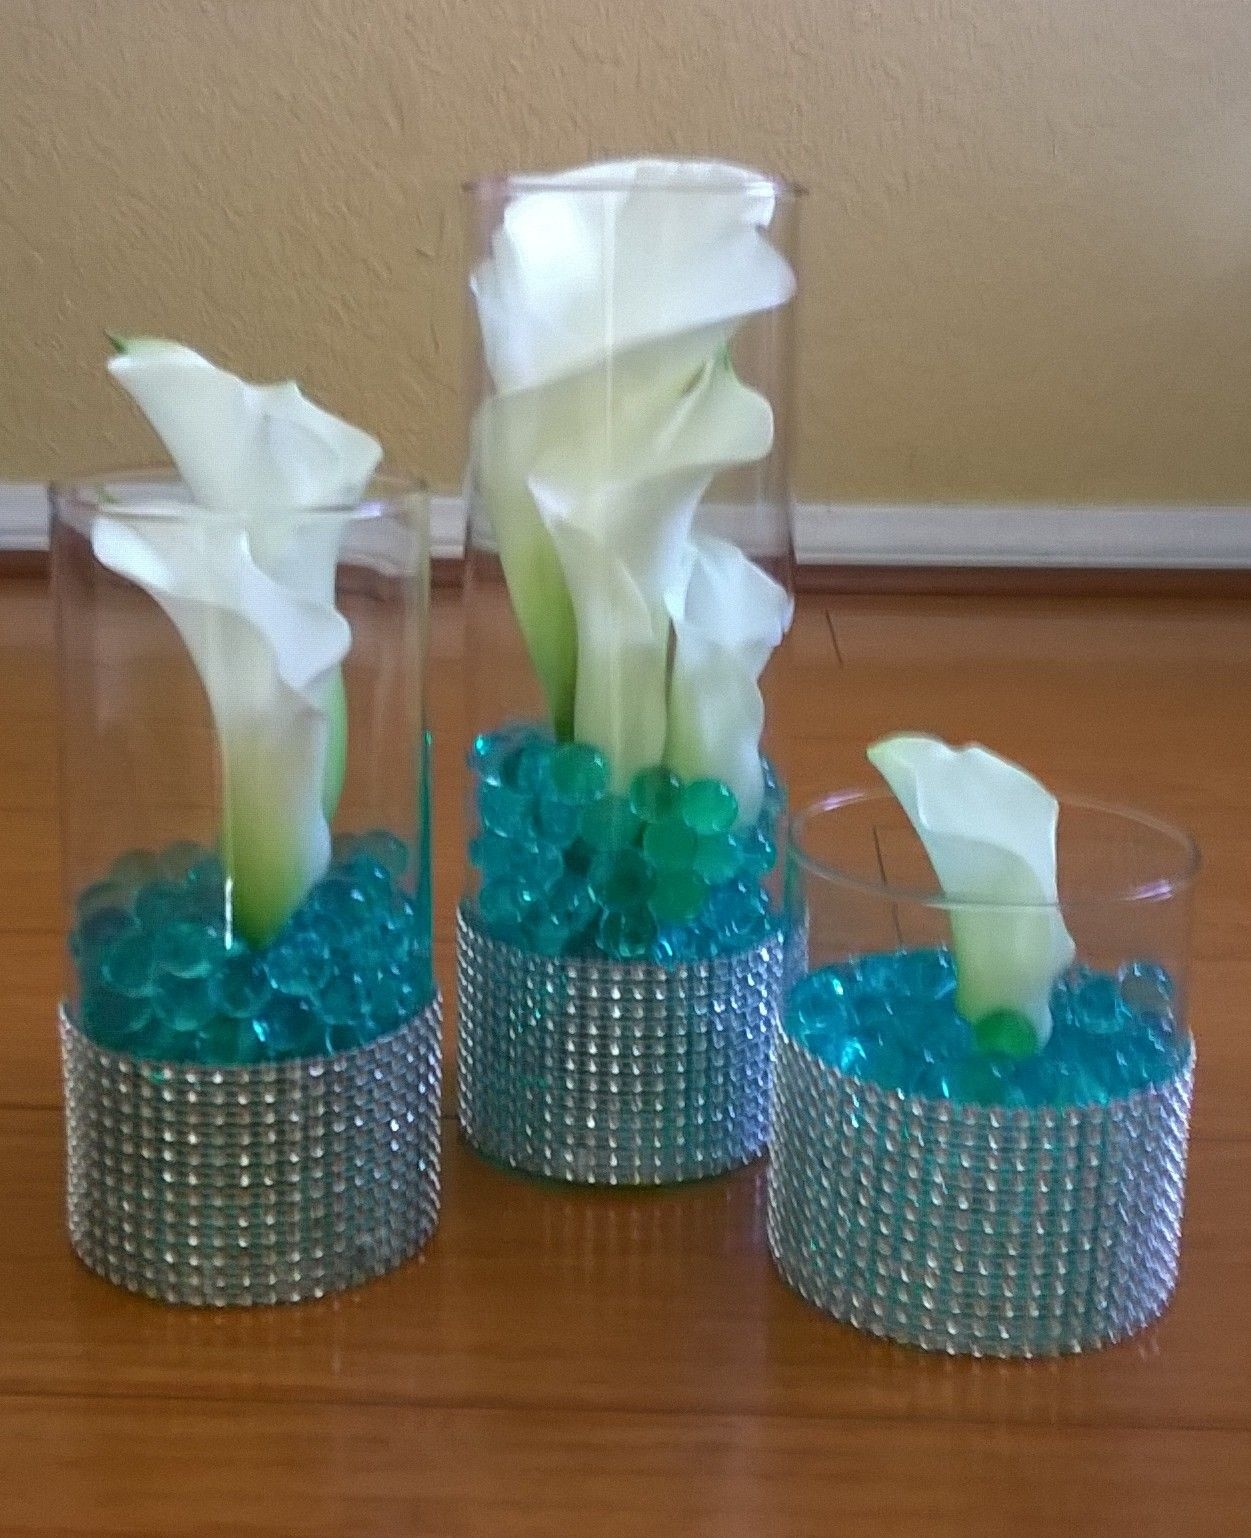 Water Wedding Centerpiece Ideas: Calla Lilies With Turquoise Water Beads